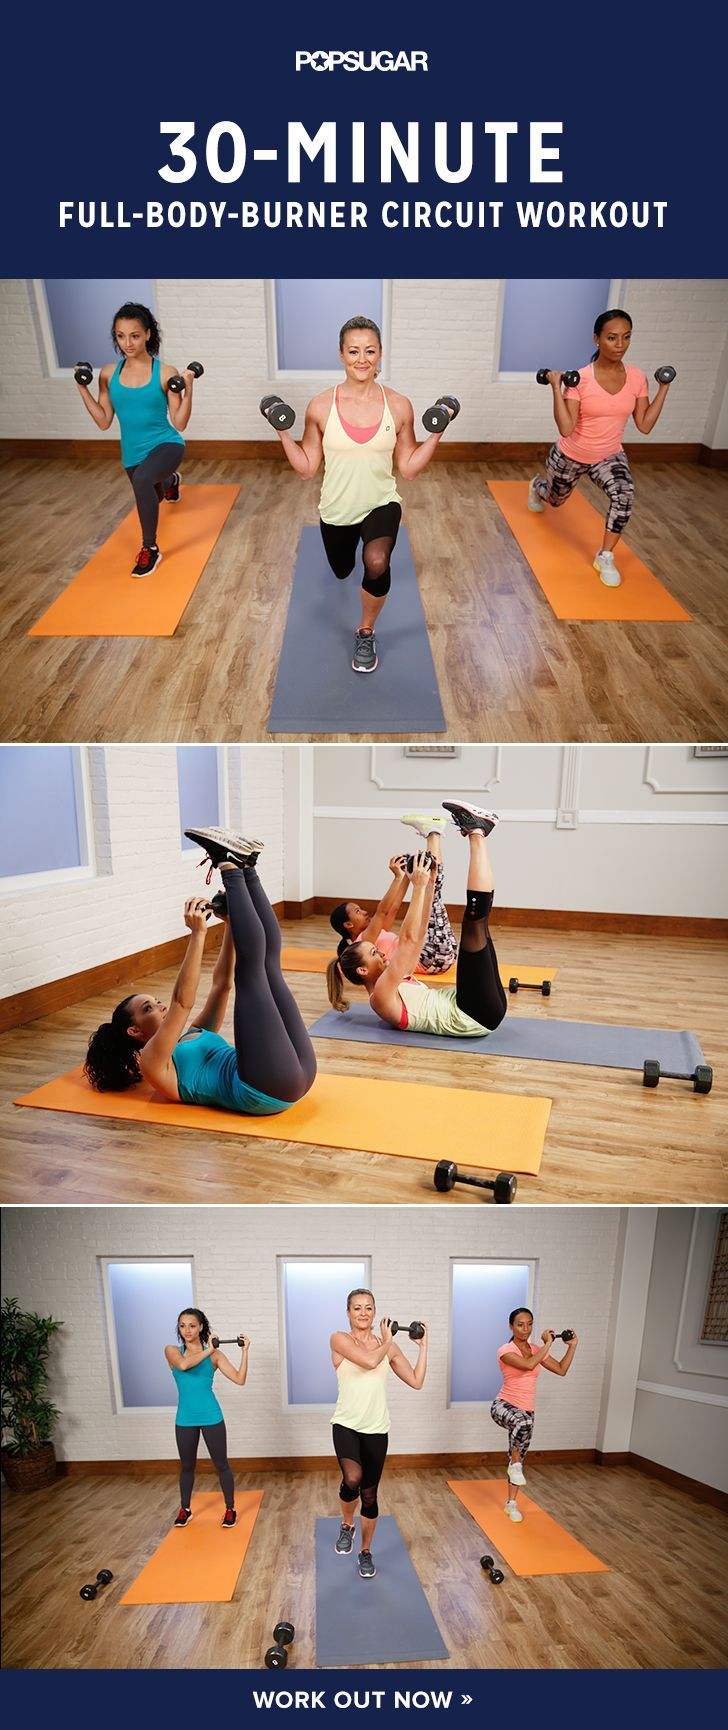 Take 30 minutes out of your day for this full-body workout